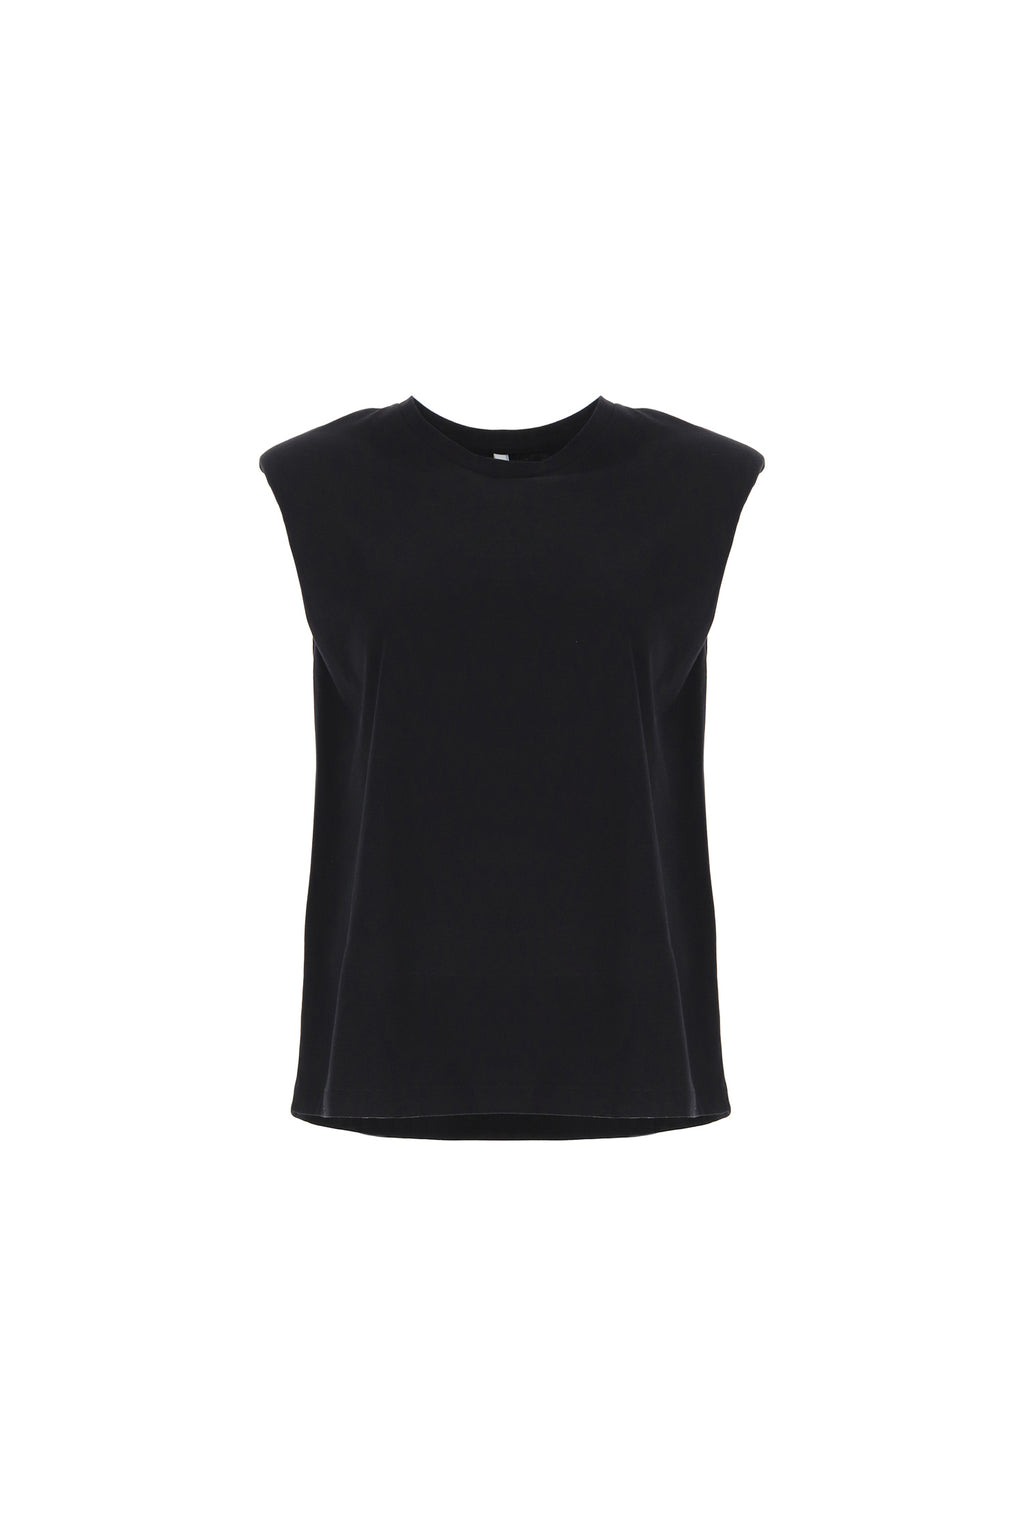 IMPERIAL | CREW-NECK TOP WITH SHOULDER PADS